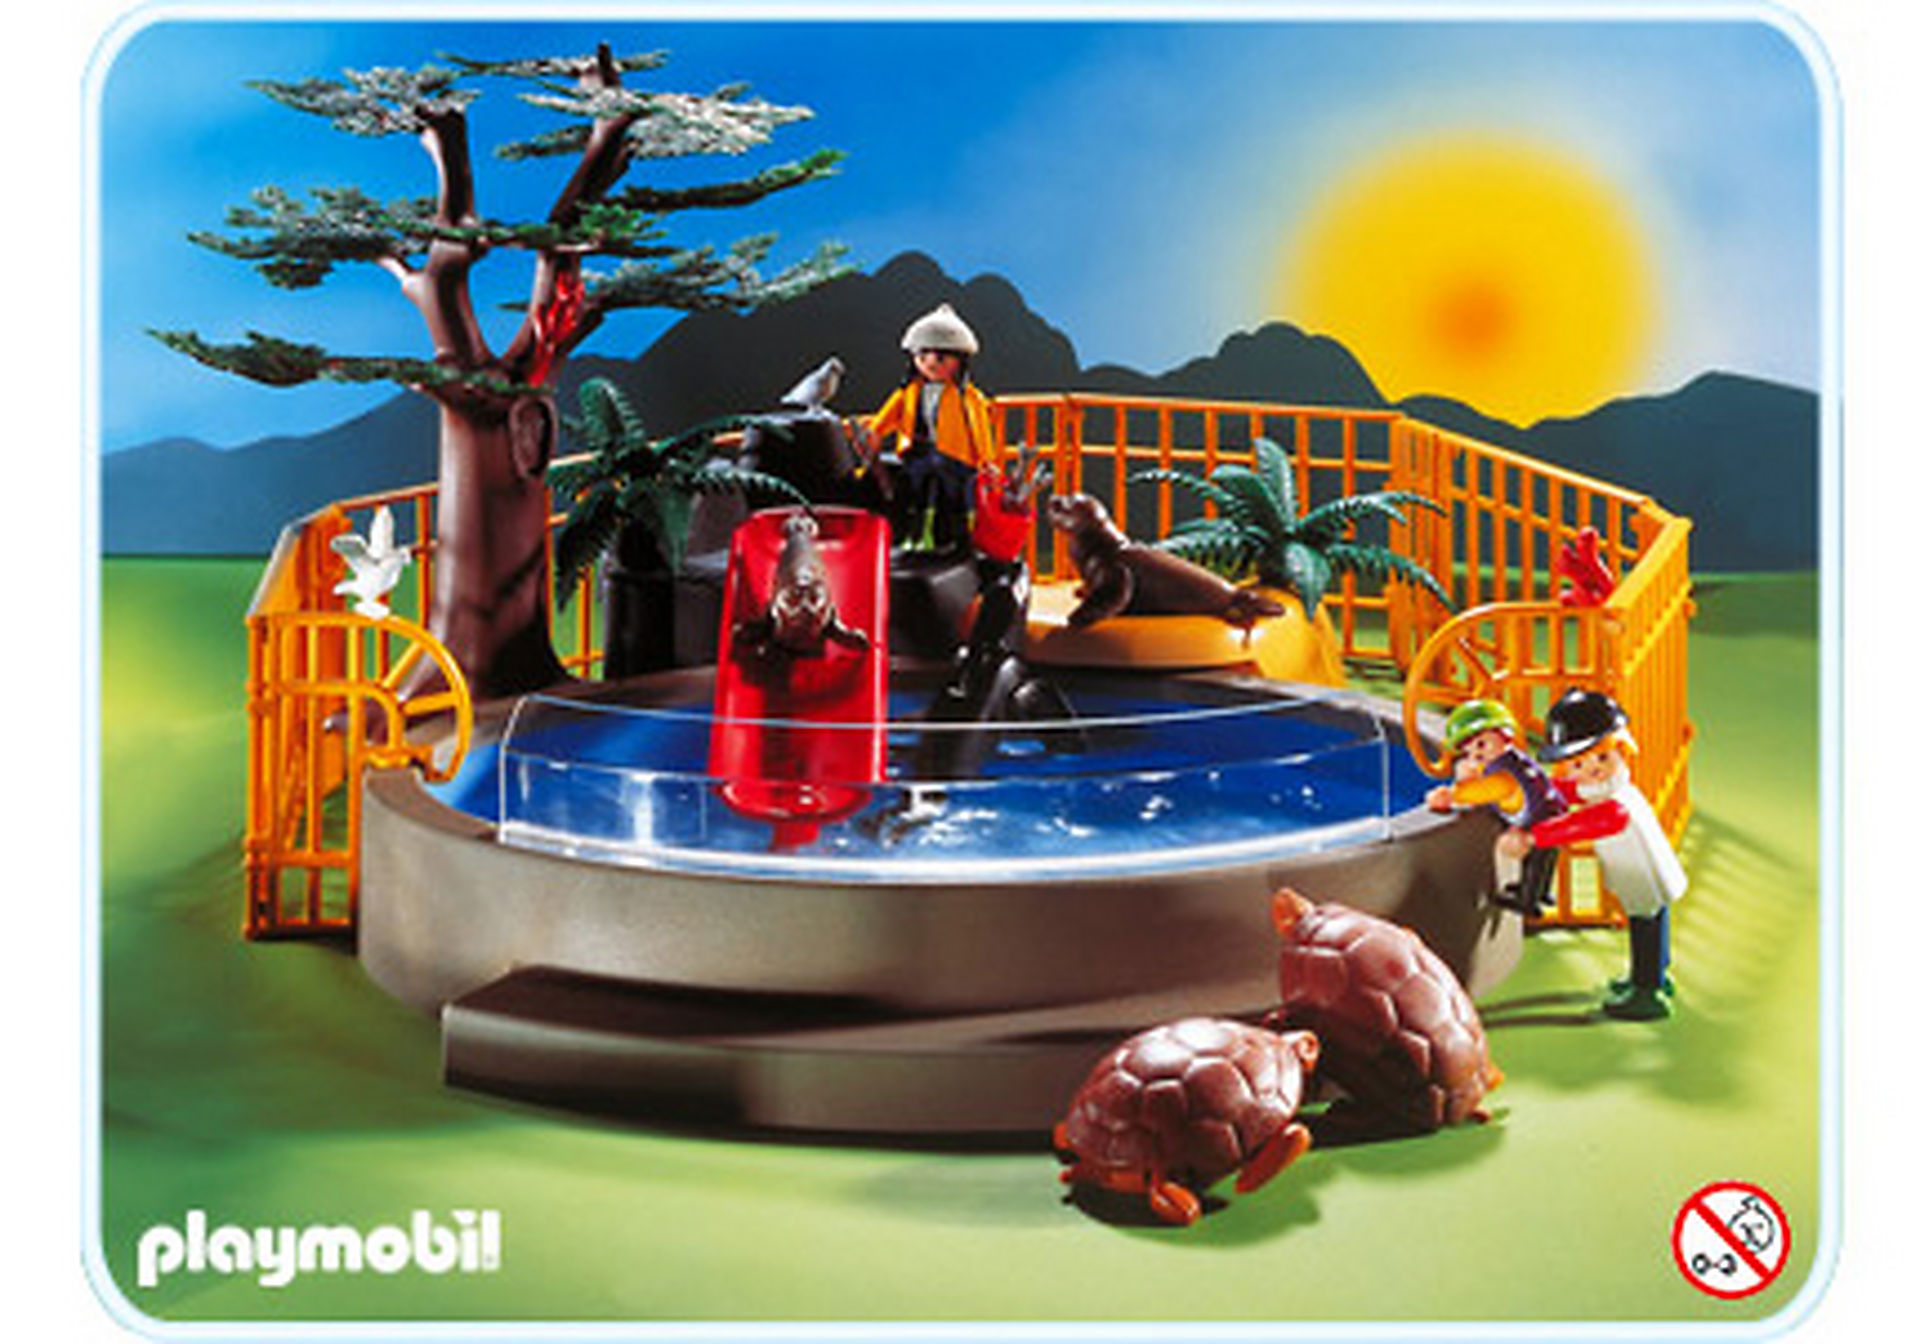 http://media.playmobil.com/i/playmobil/3650-A_product_detail/Gehege/Wasserbecken